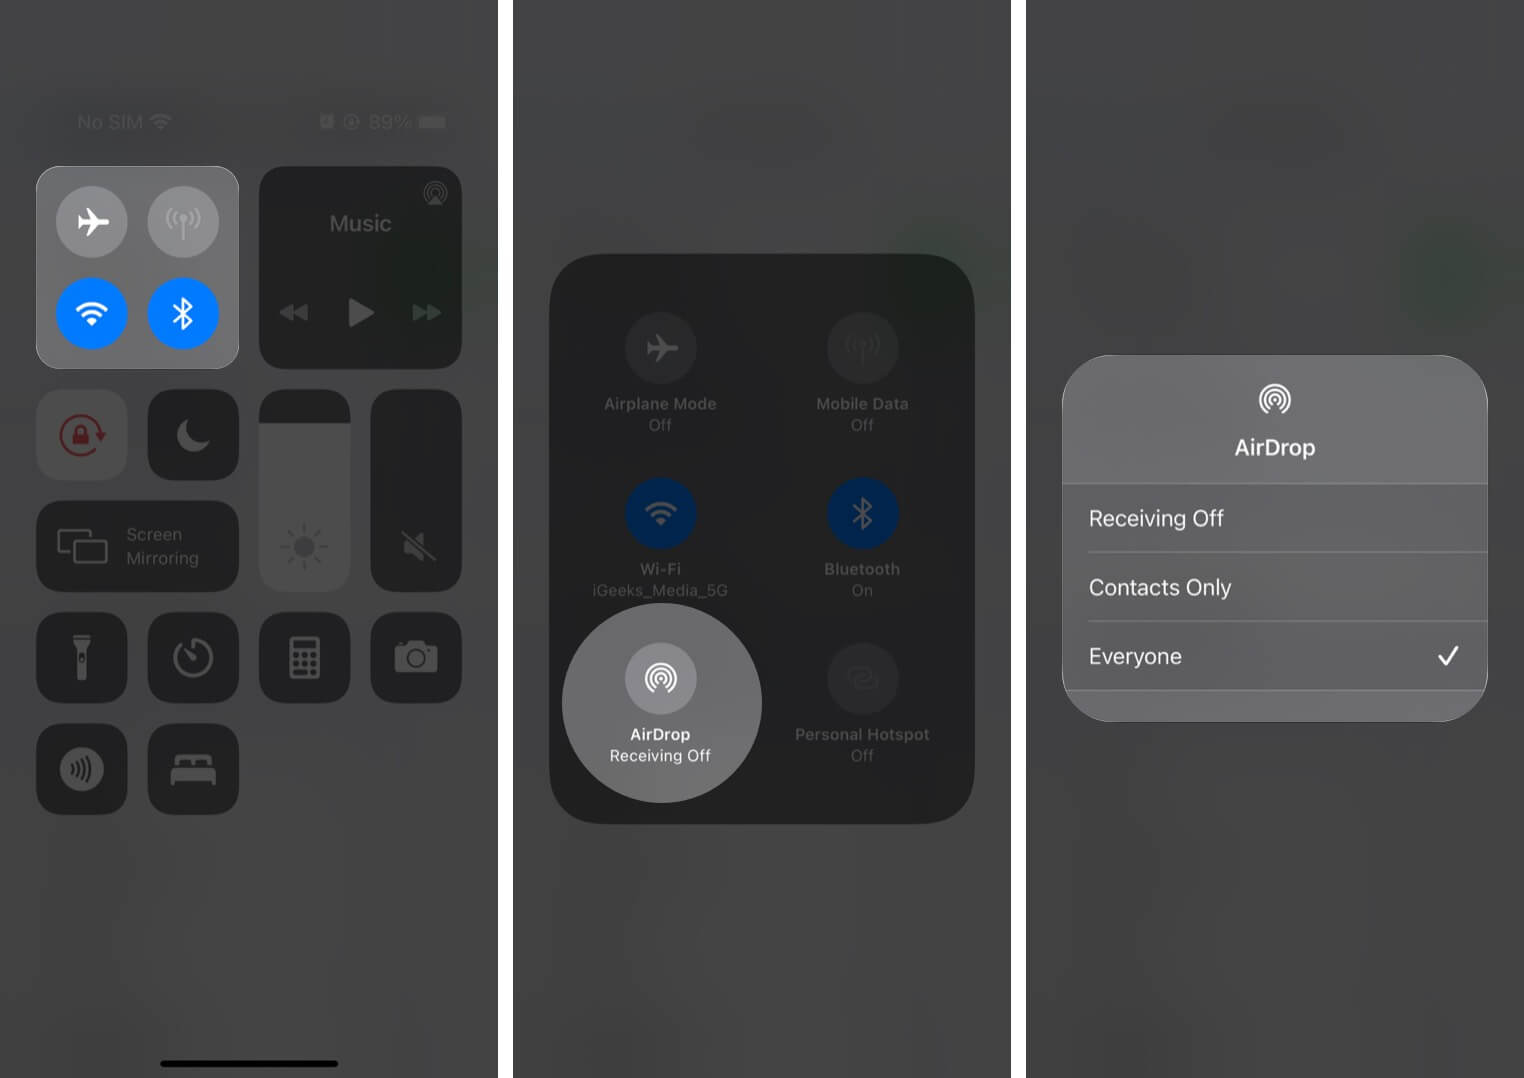 Allow AirDrop for Everyone in Control Center on iPhone